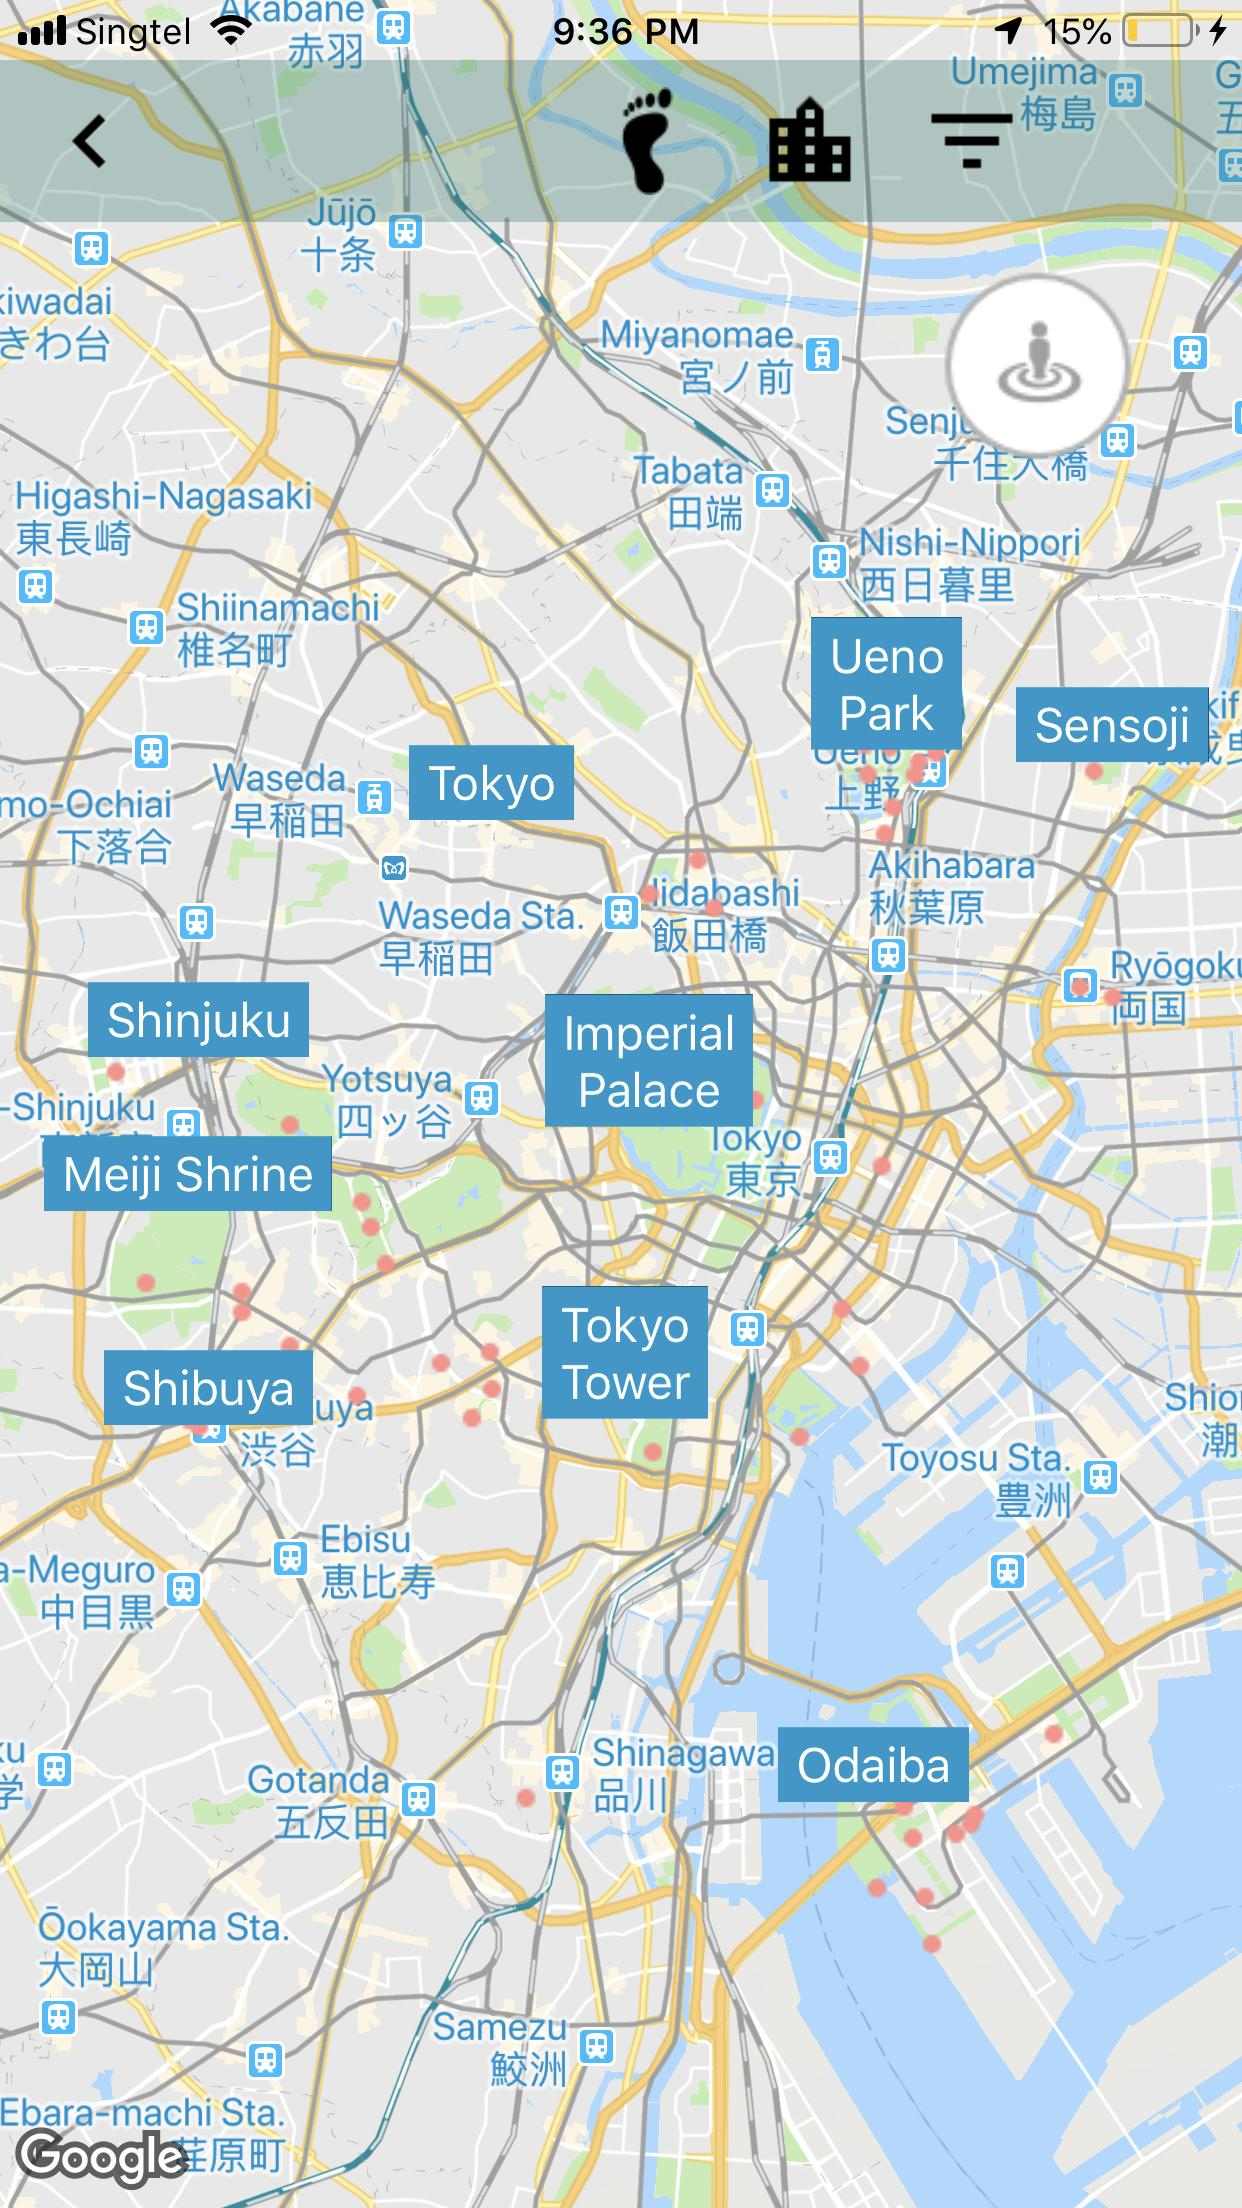 Tokyo Subway Map With Attractions.Tokyo Travel Guide Attraction Jr Subway Map For Android Apk